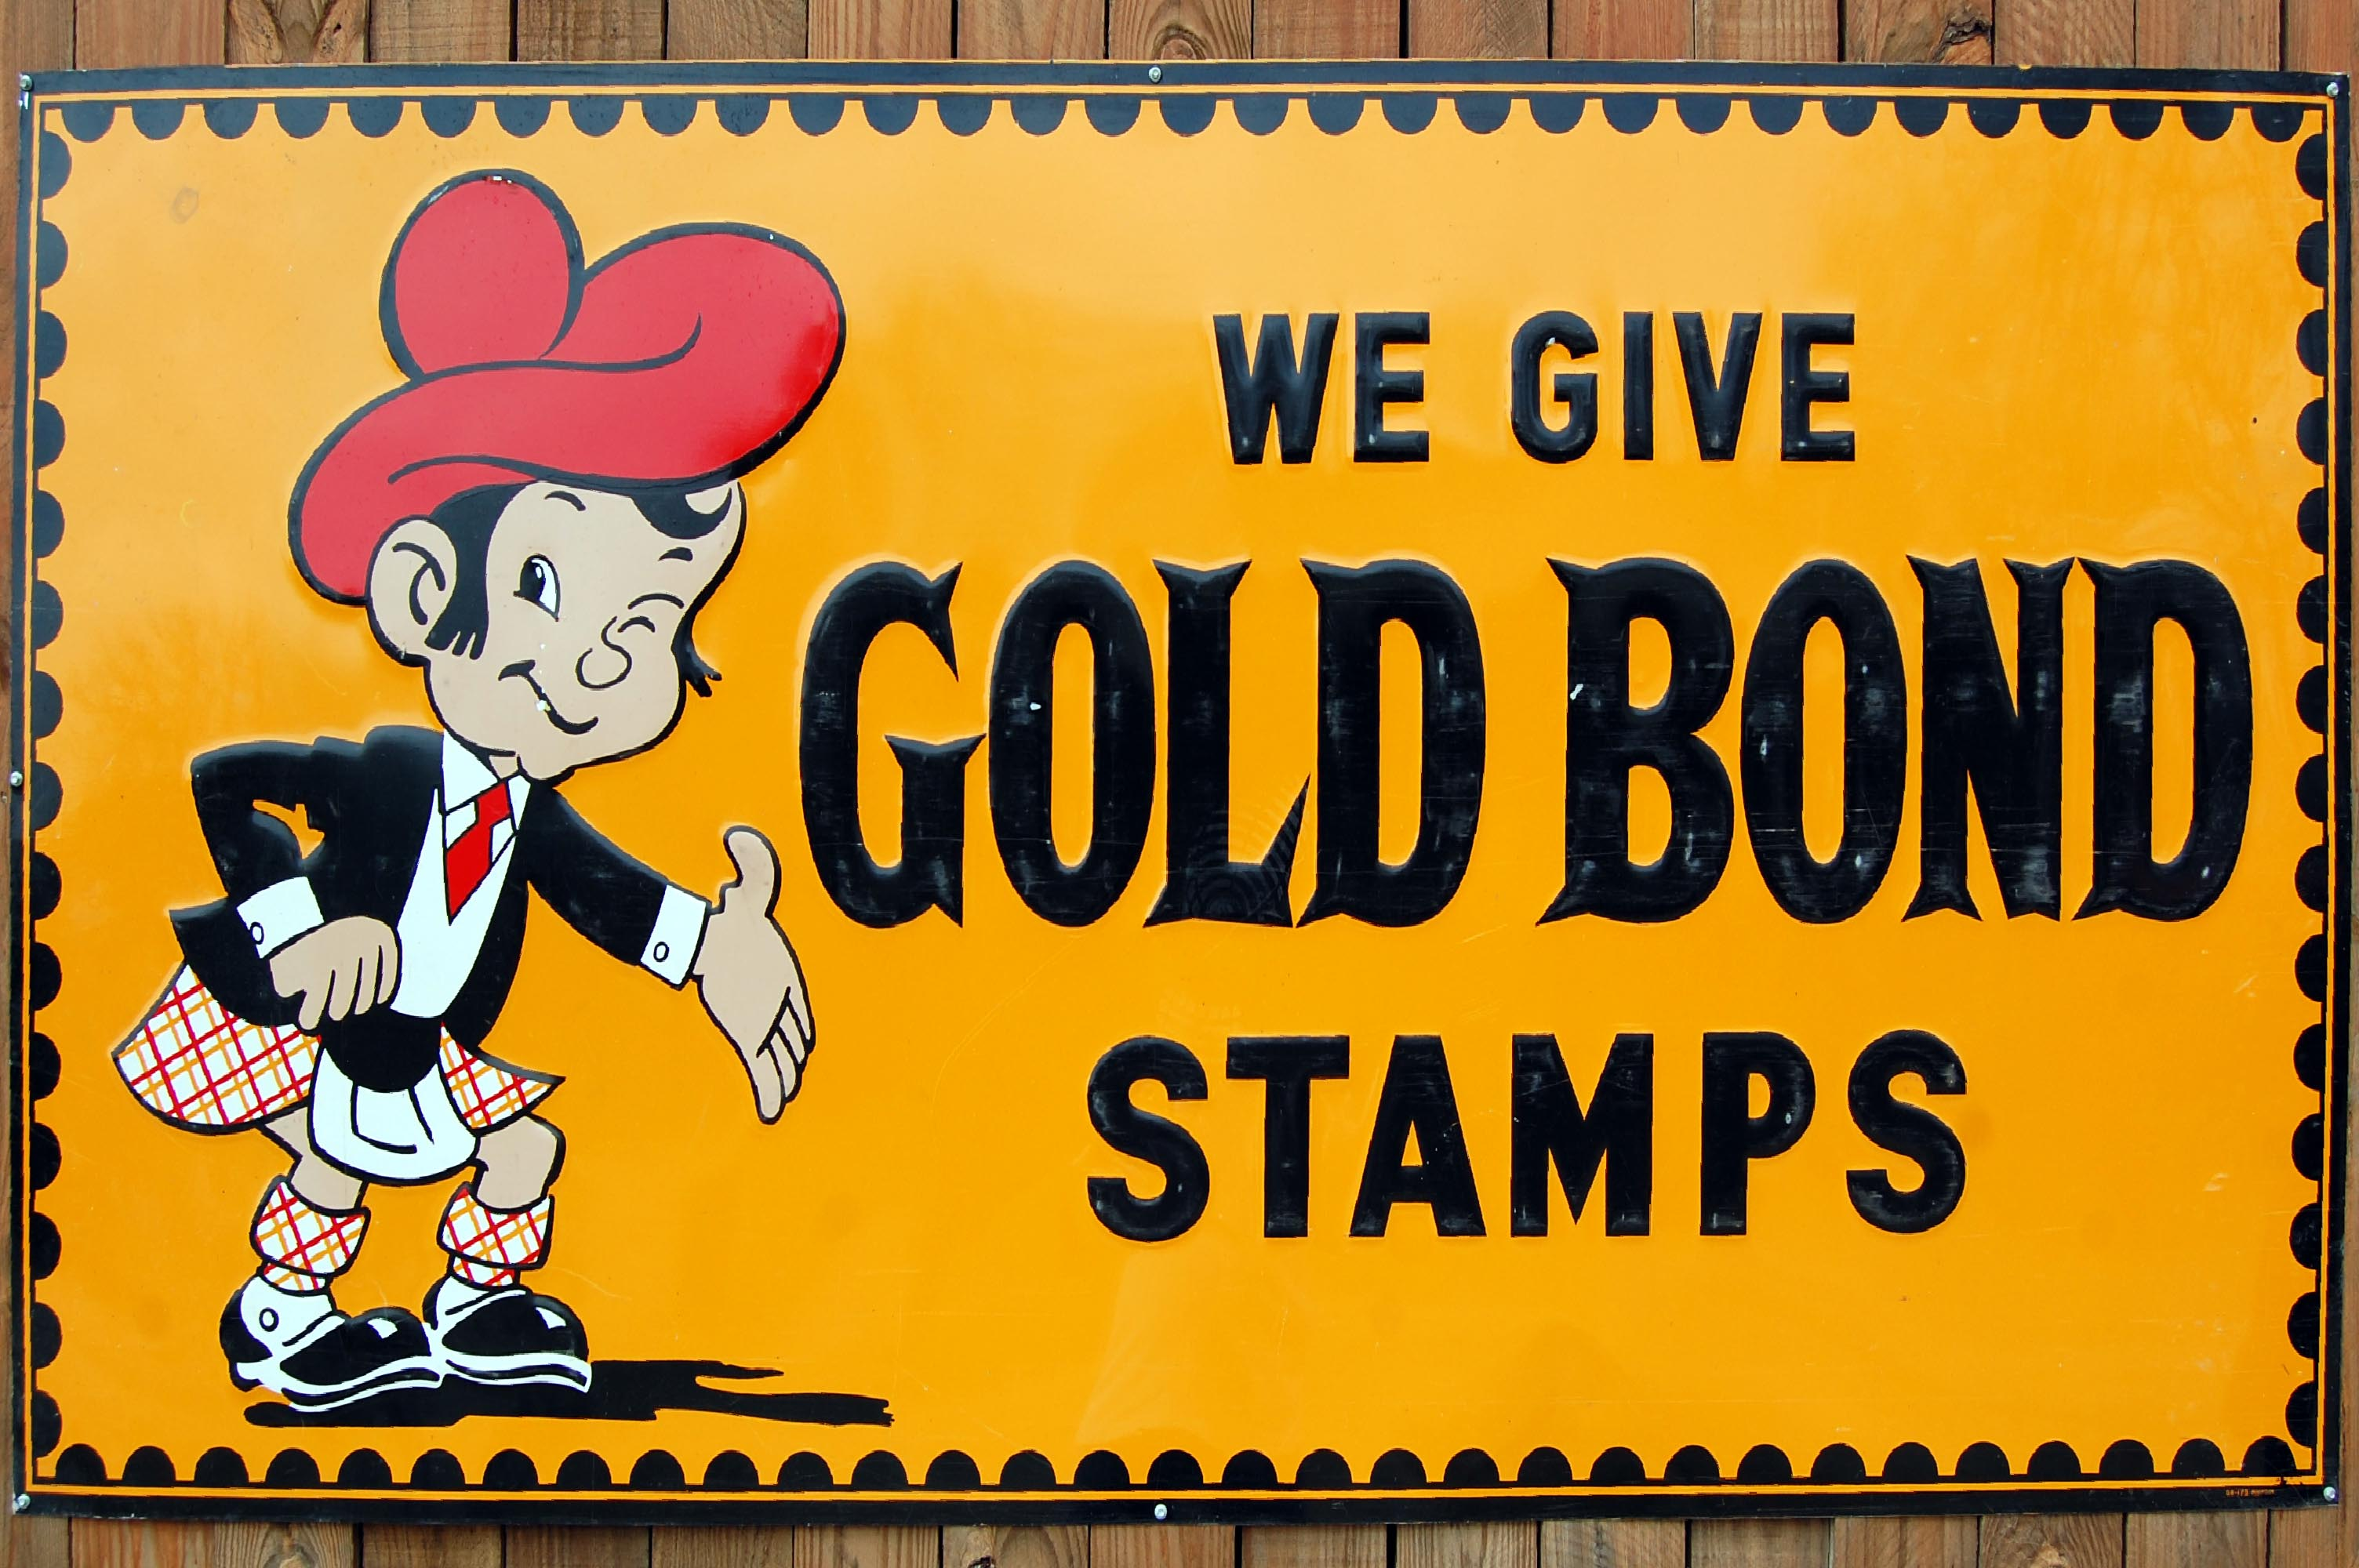 Gold Bond Stamps - Canton, Texas U.S.A. - June 10, 2014